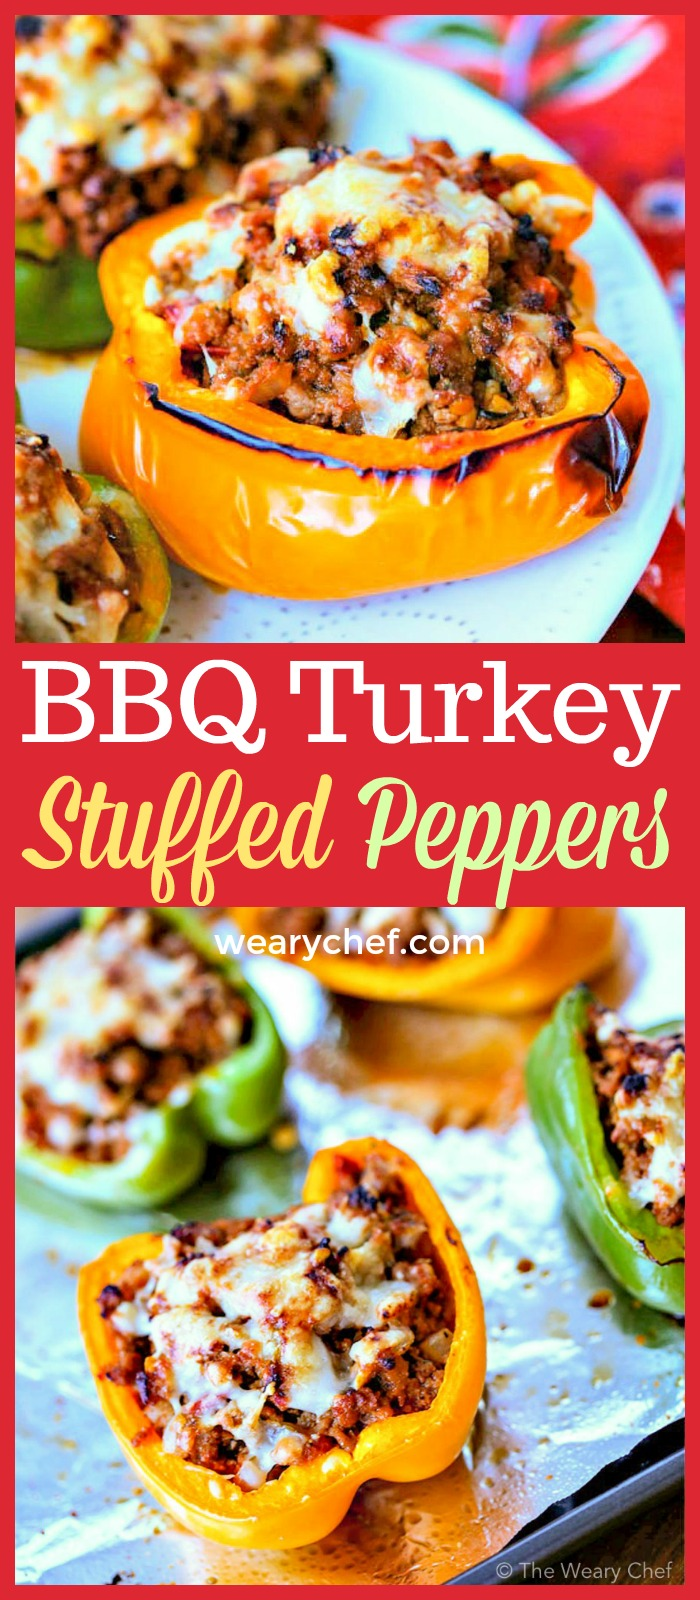 These ground turkey stuffed peppers with BBQ flavor are good for you and taste out of this world!